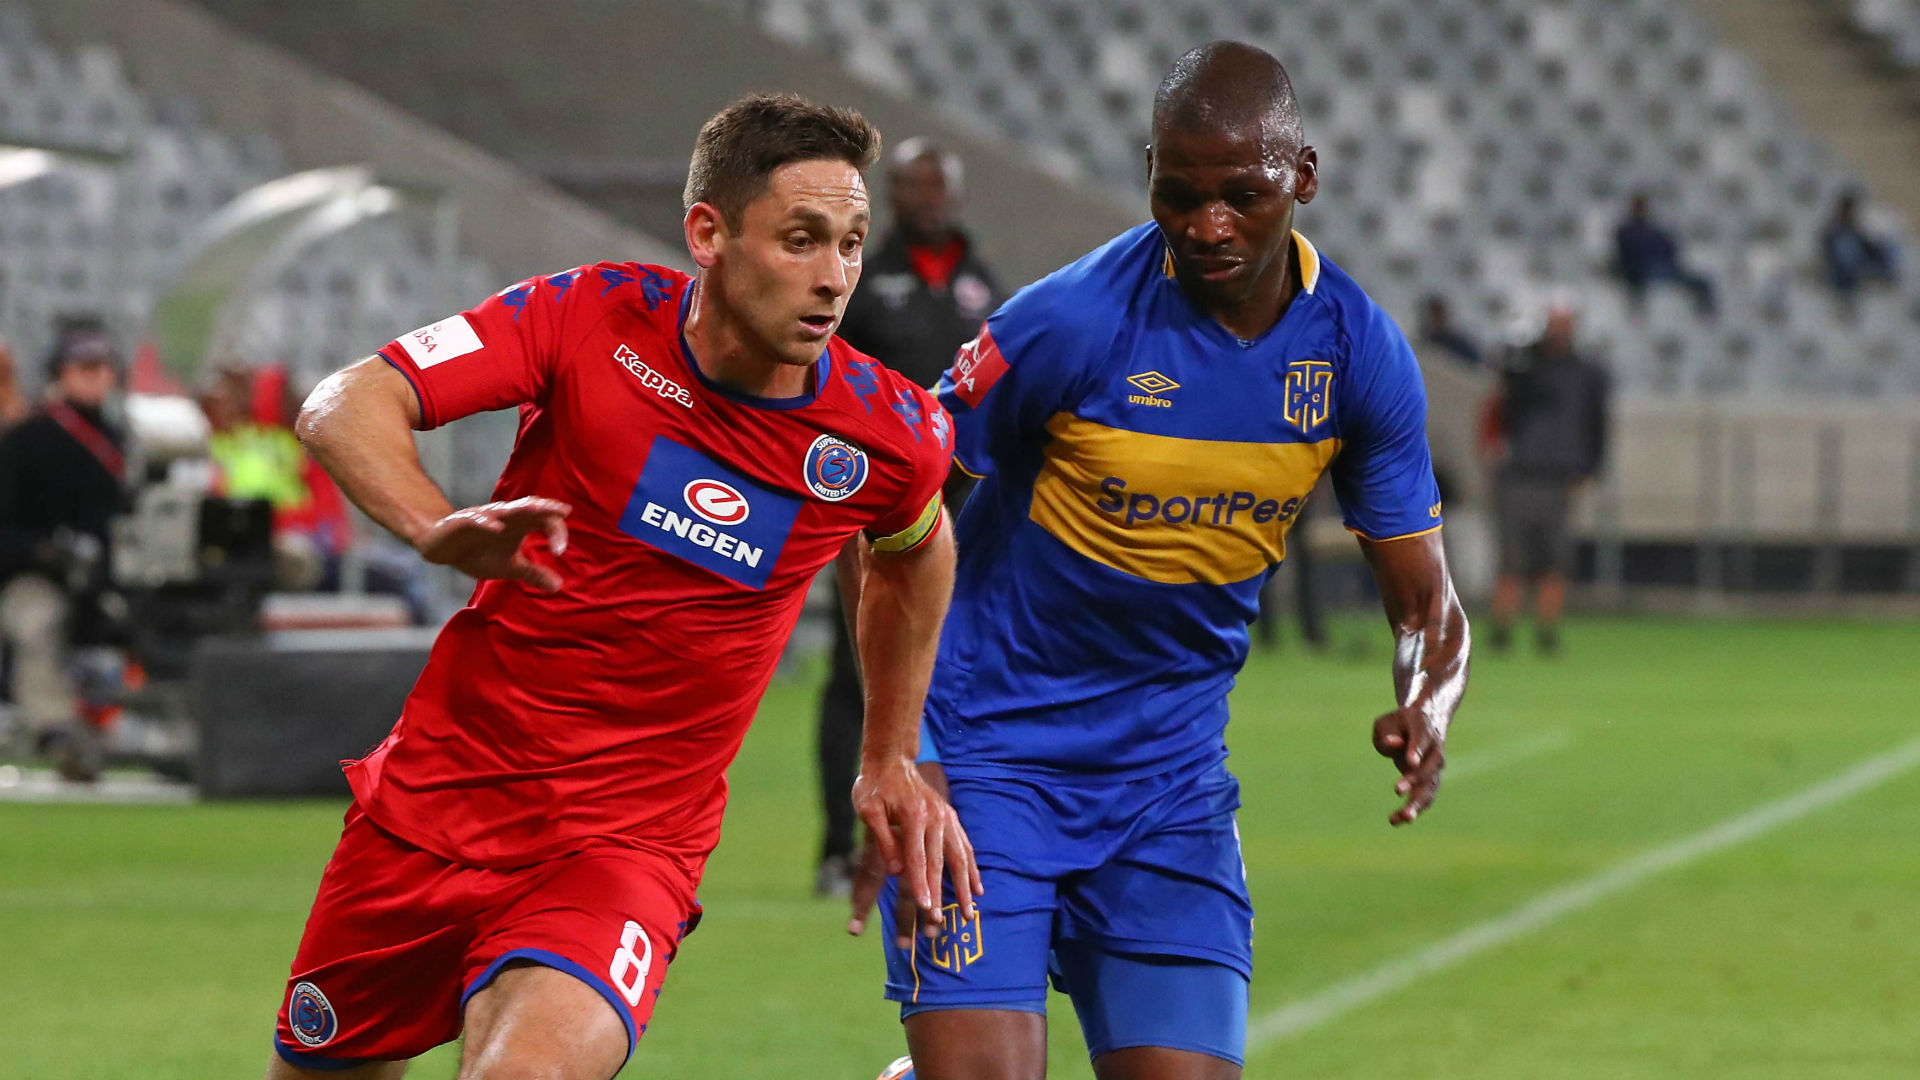 Dean Furman of Supersport United evades challenge from Thamsanqa Mkhize of Cape Town City, April 2018